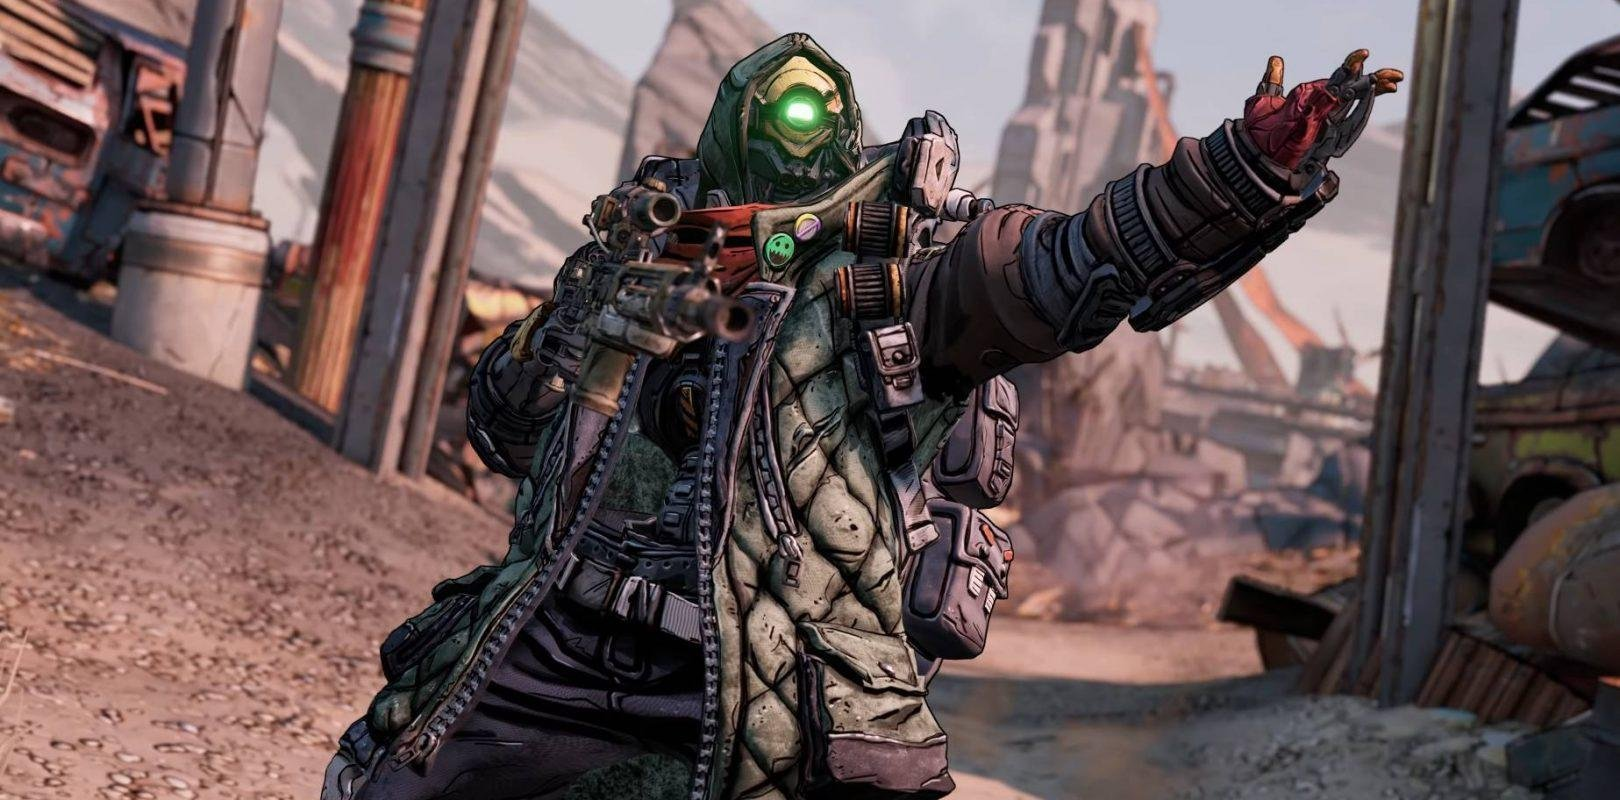 Borderlands 3's latest update buffs anointments for FL4K, Moze and Zane